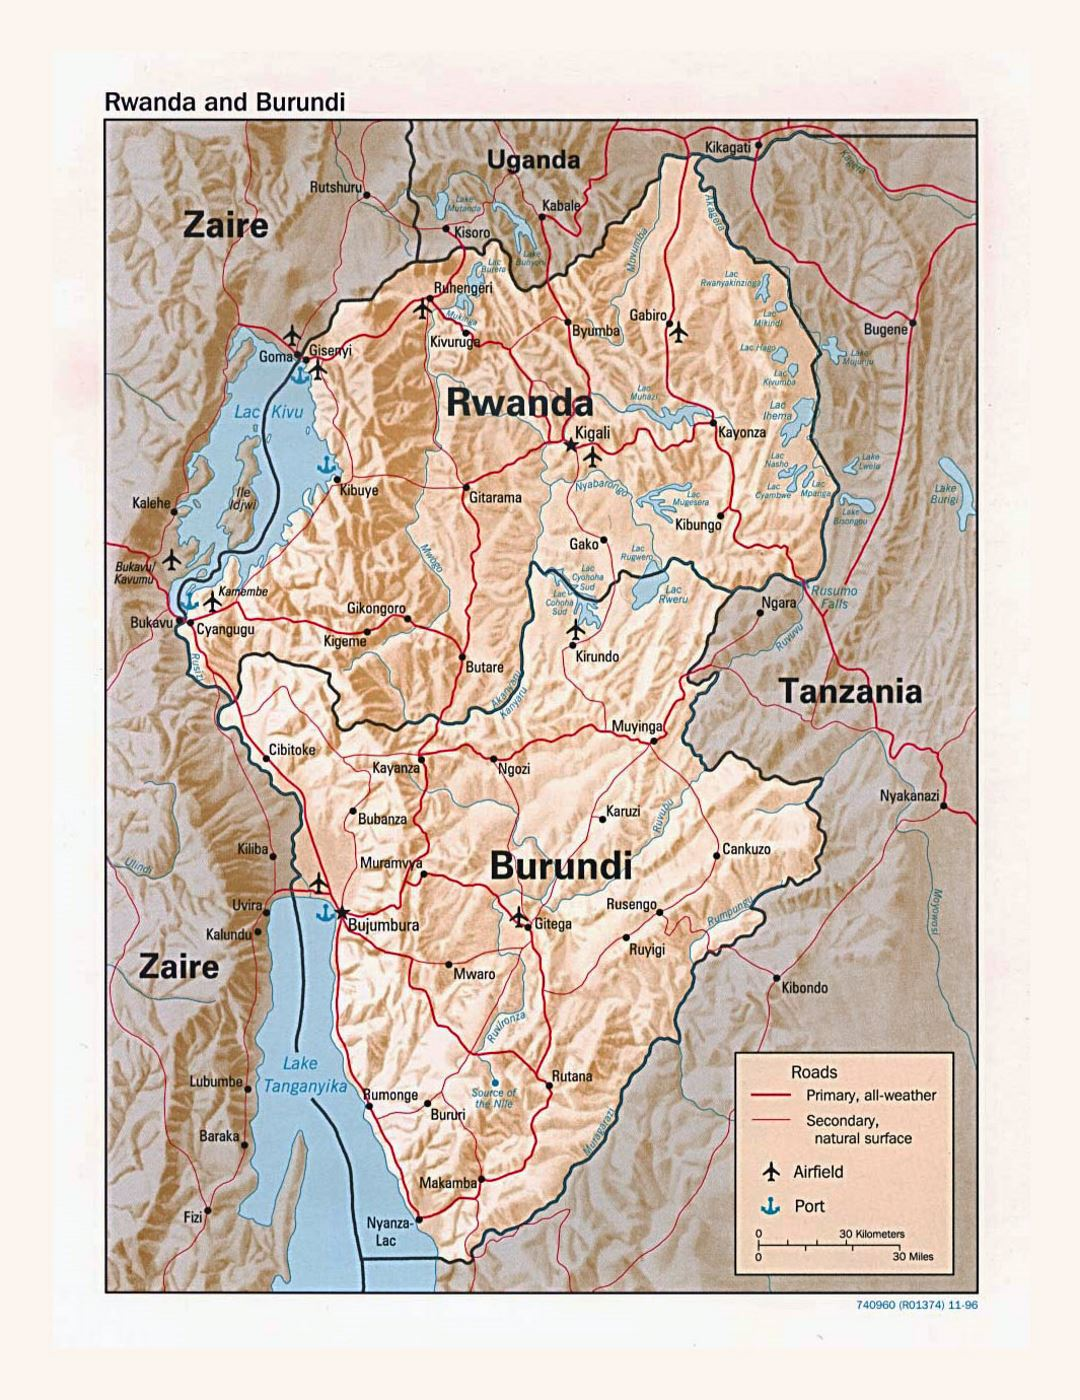 Detailed political map of Rwanda and Burundi with relief, roads, major cities, airports and ports - 1996